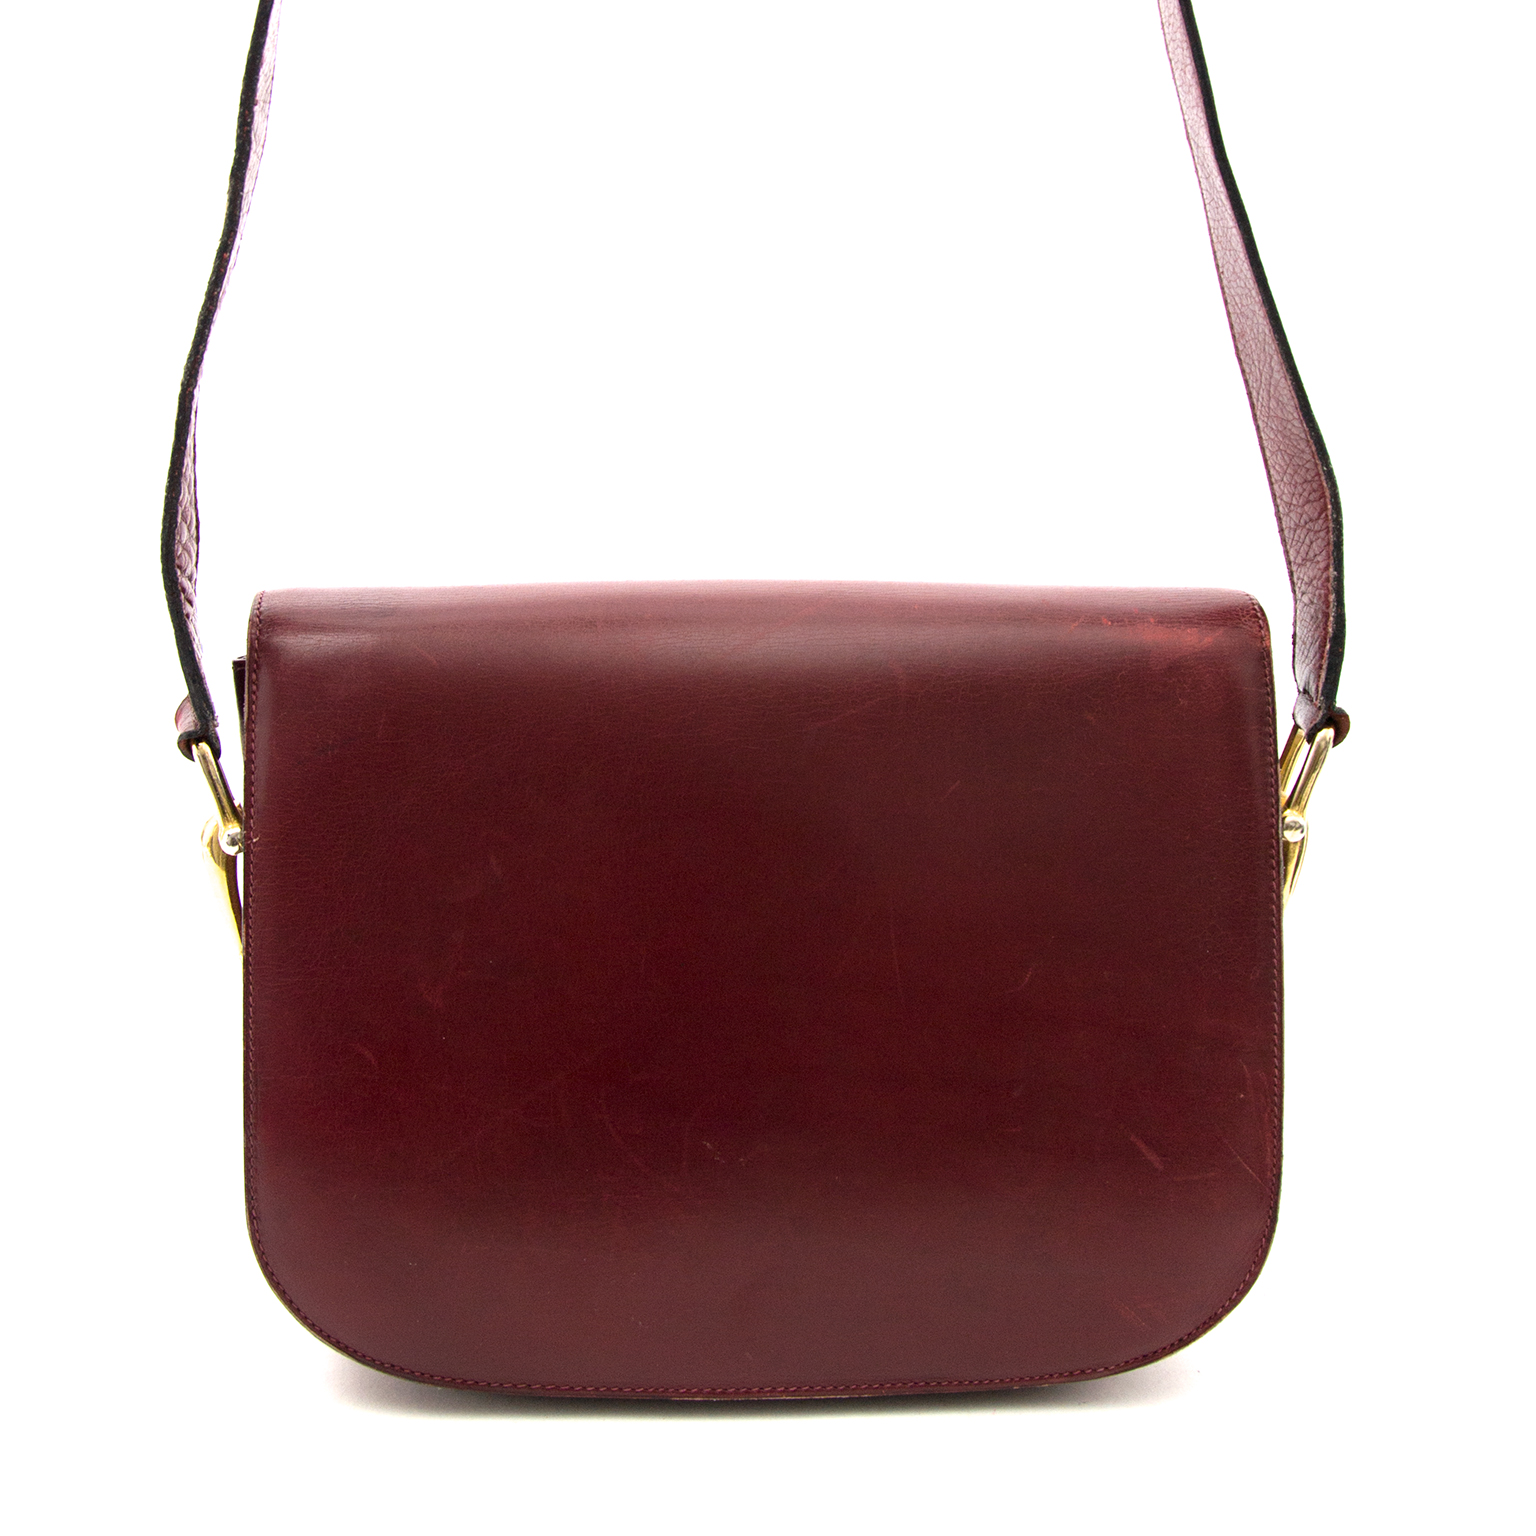 Shop authentic Celine Burgundy Shoulder Bag at the right price at Labellov.com